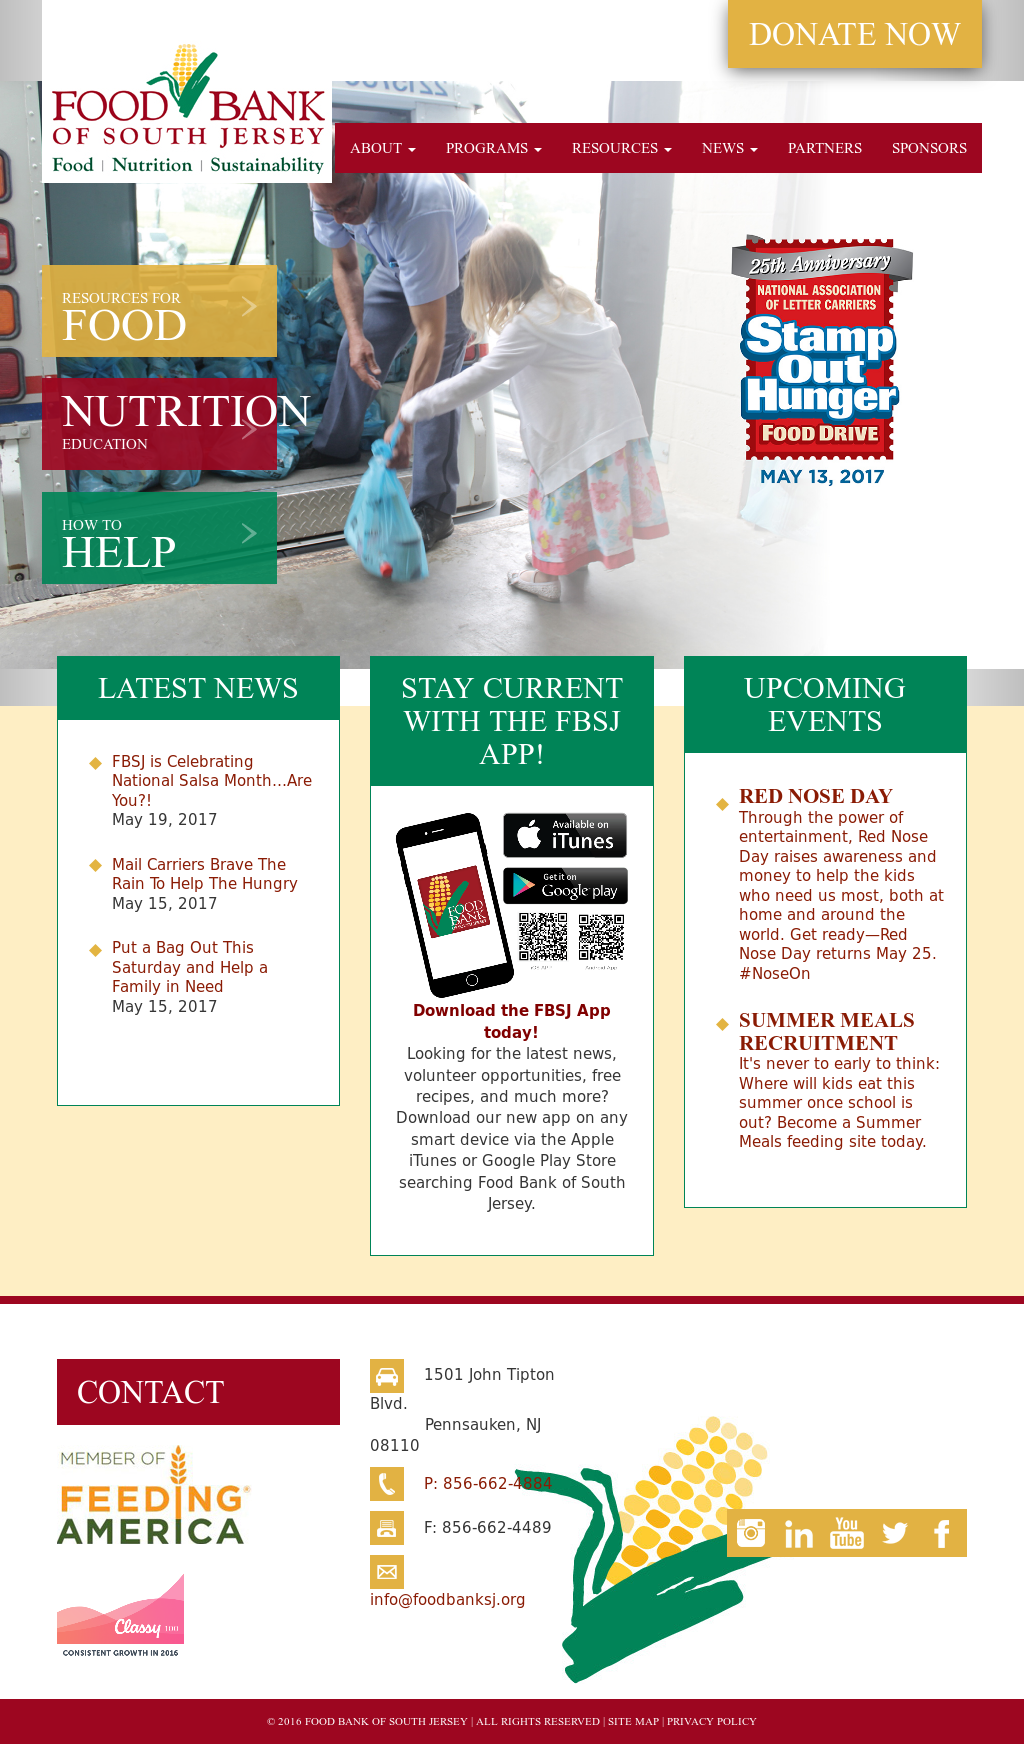 Food Bank of South Jersey Competitors, Revenue and Employees